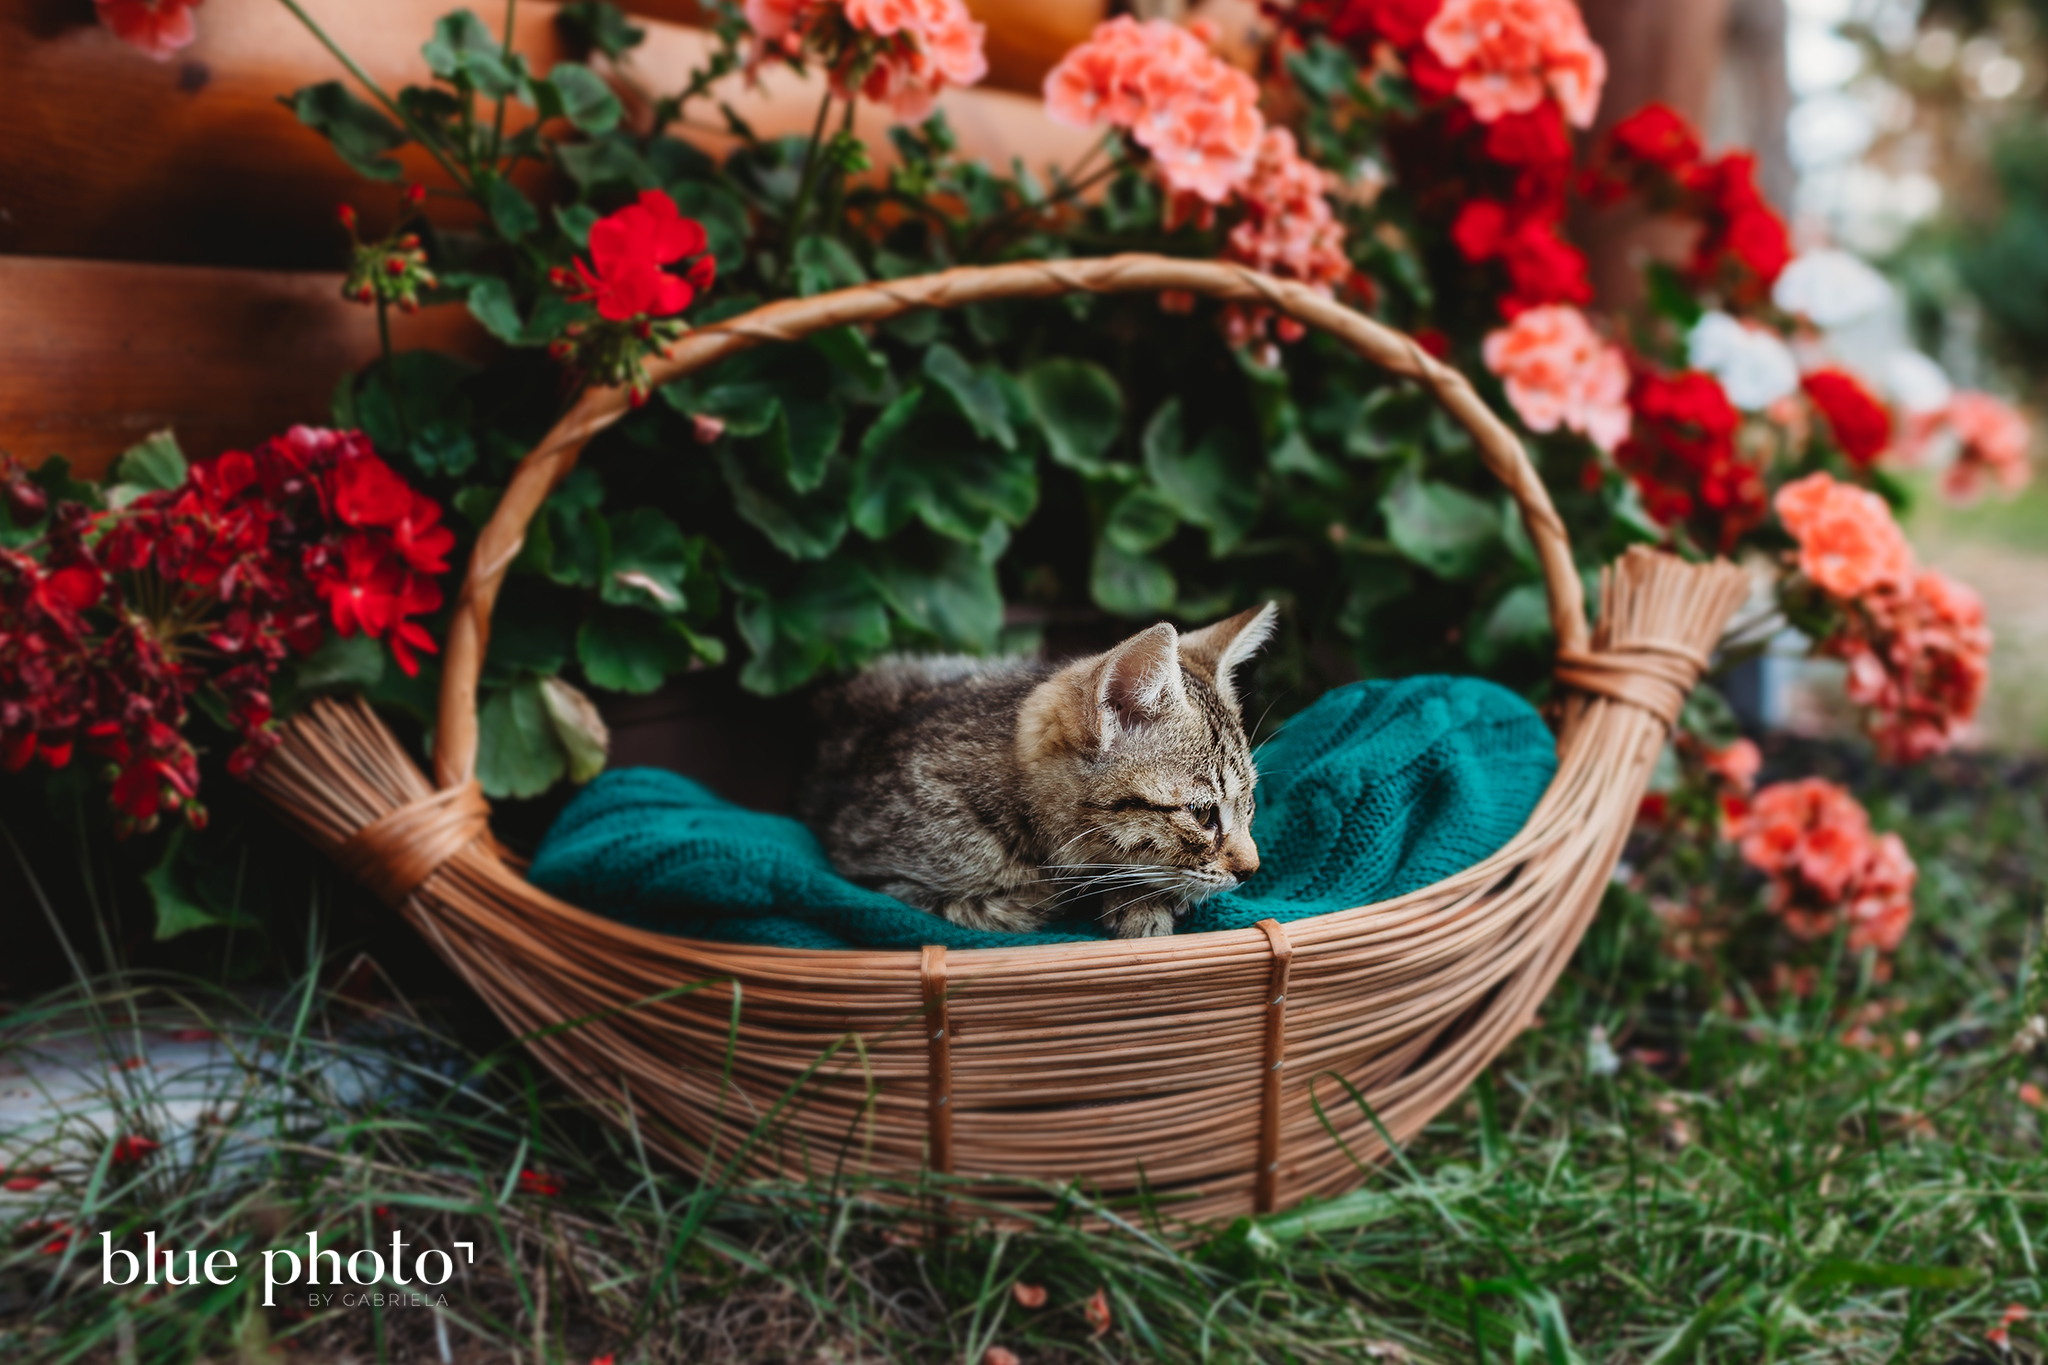 Little Kitten in the basket - West London based family and pet photography, outdoor session